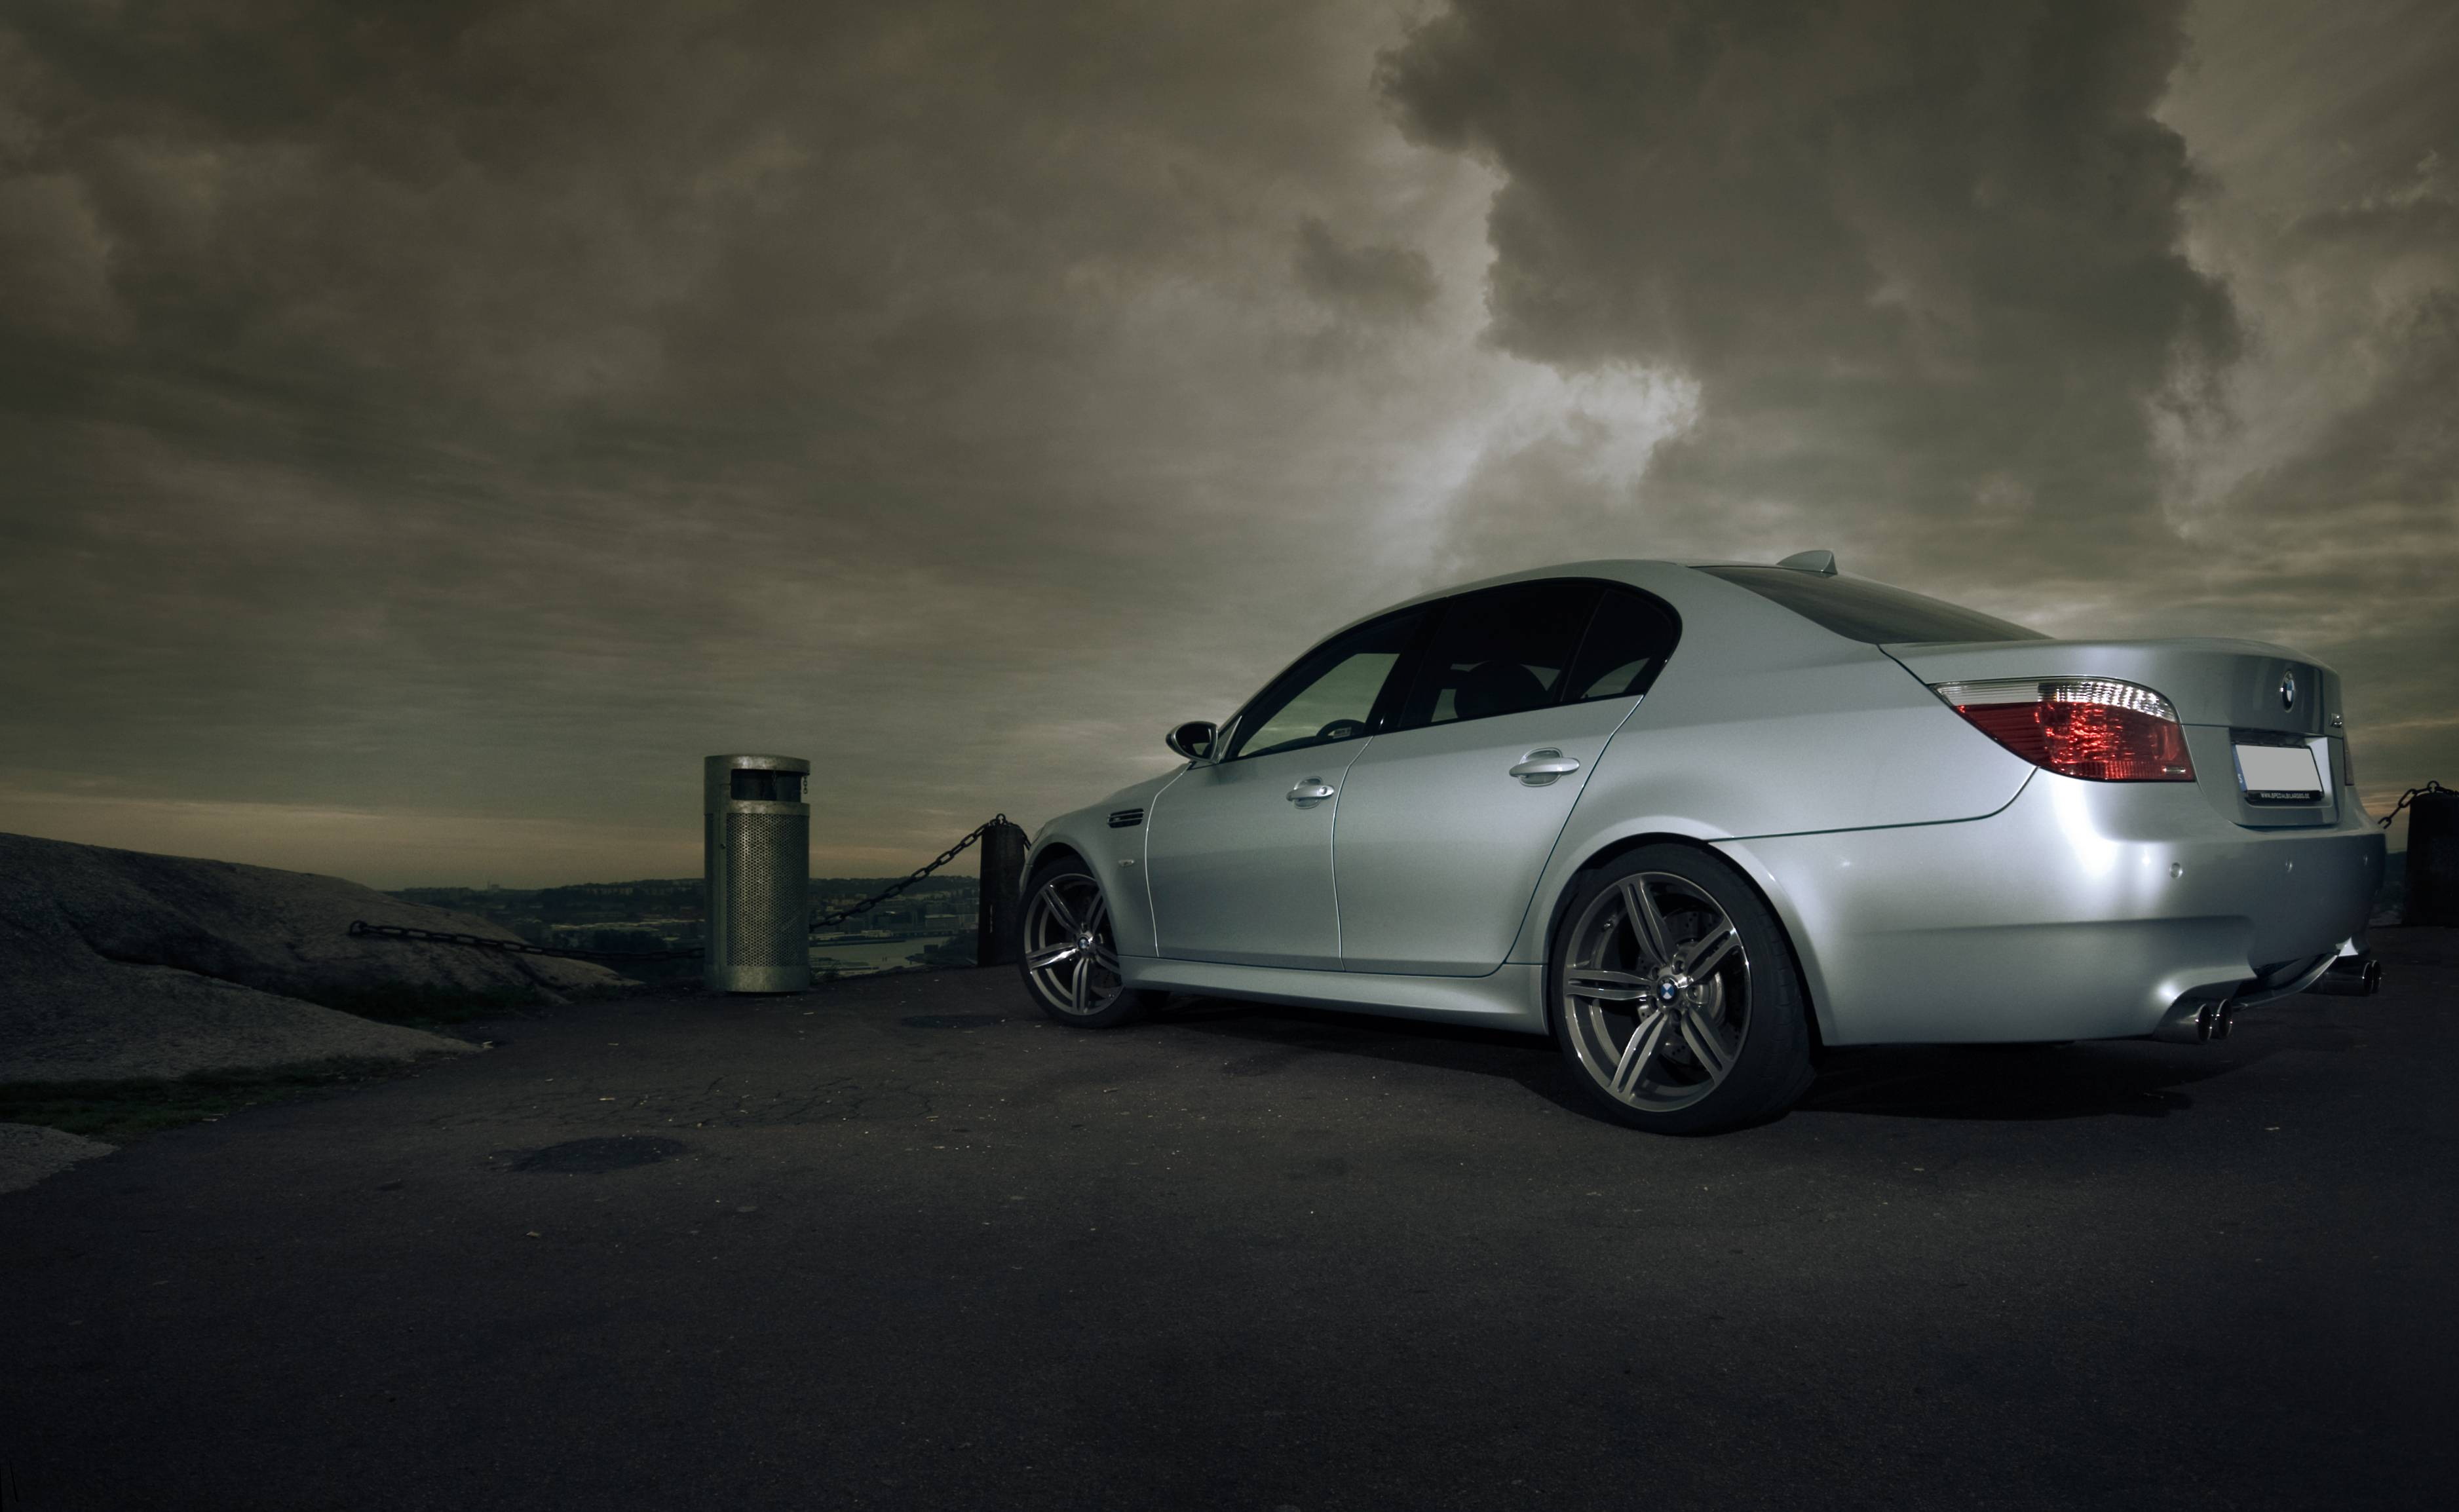 Black Bmw M5 Wallpapers